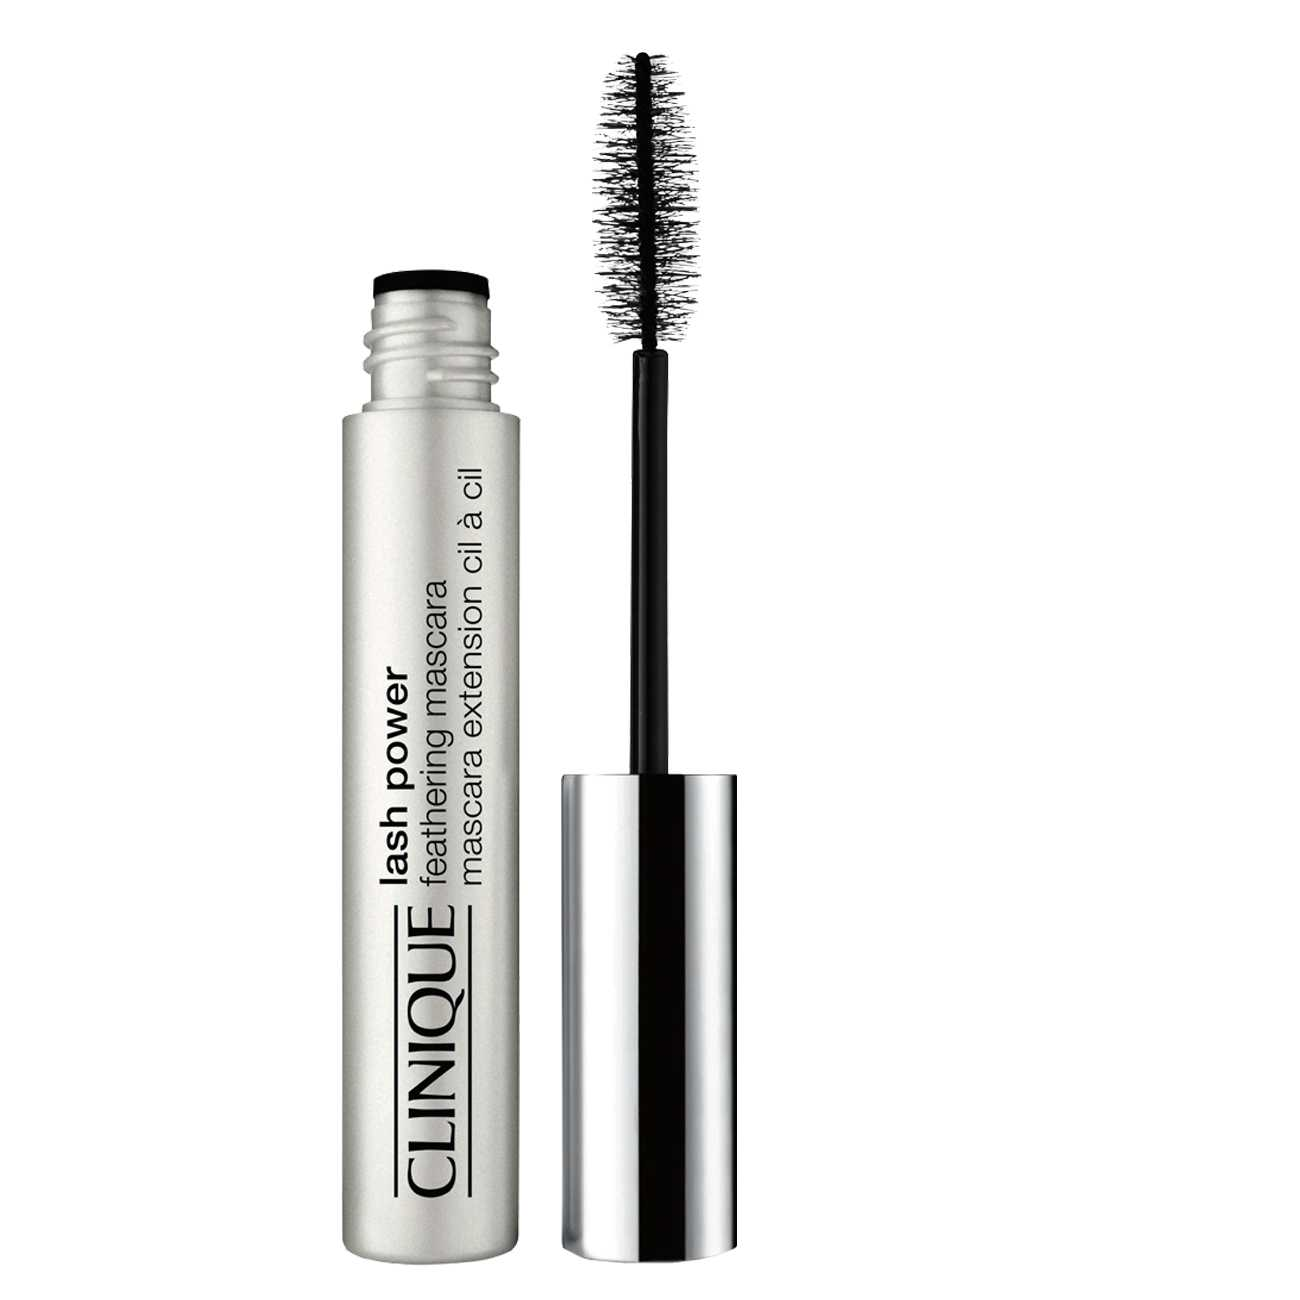 LASH POWER FEATHERING 5.5 ML imagine produs